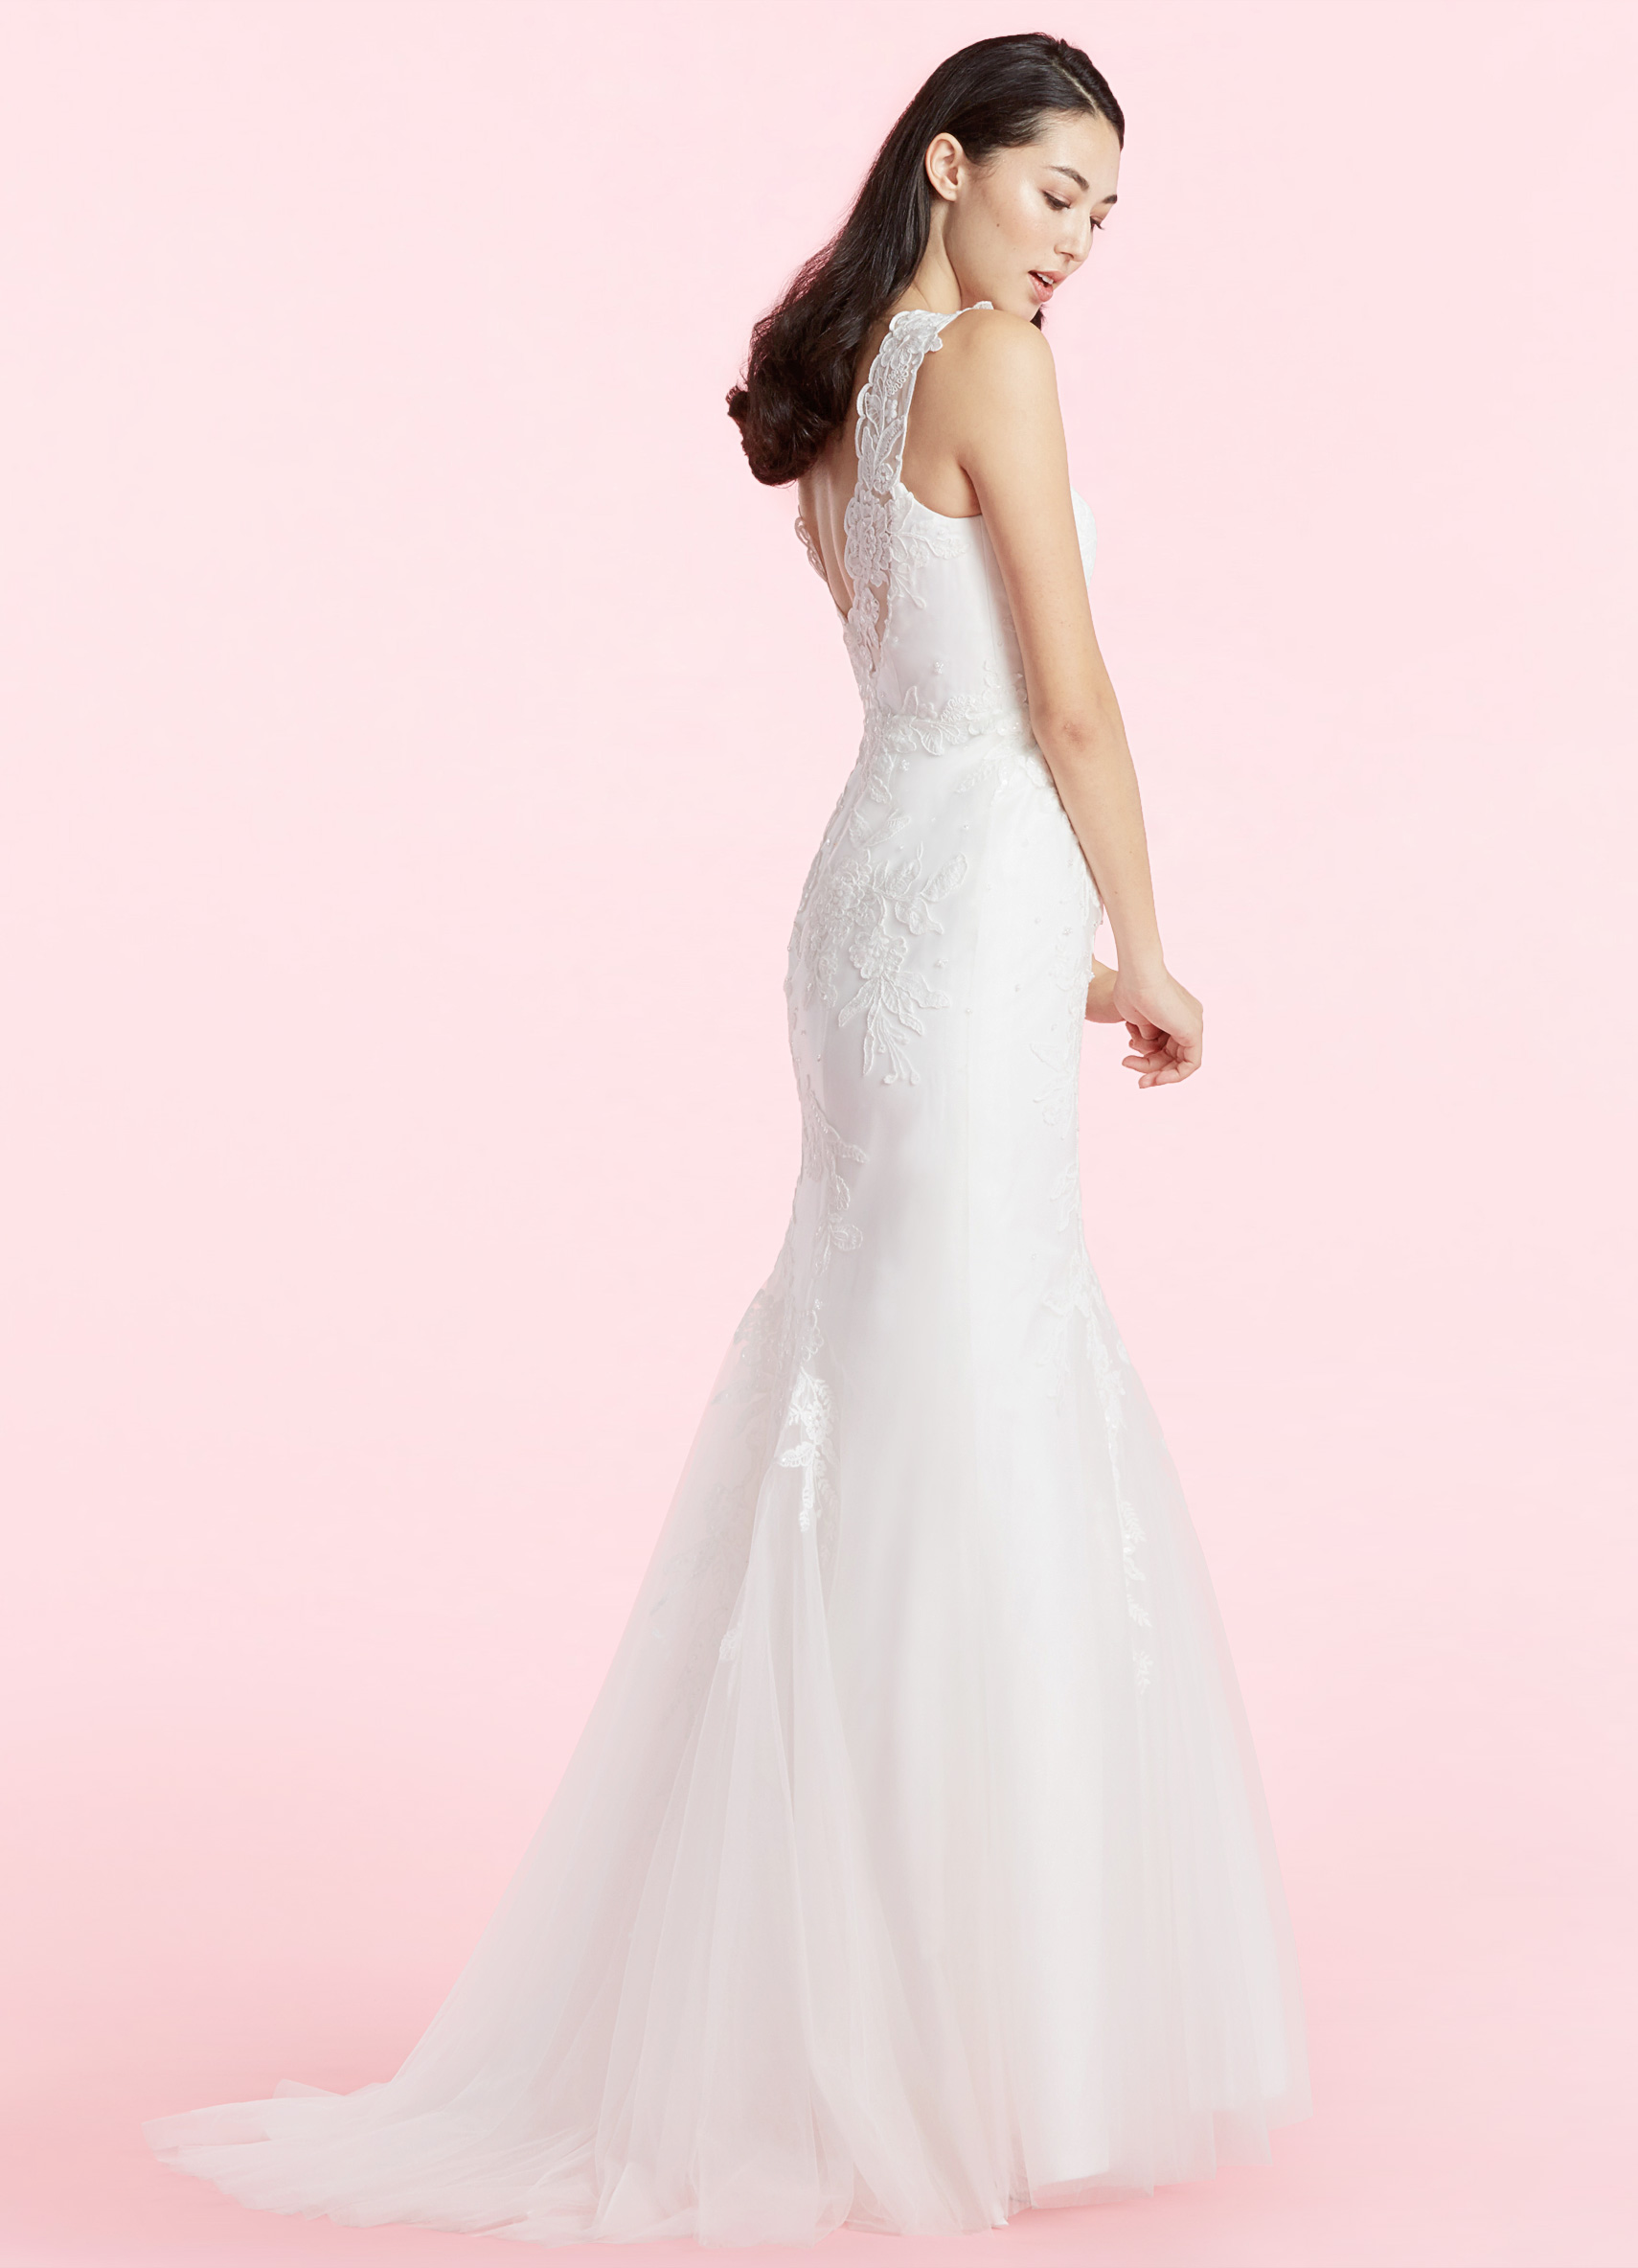 bridal, wedding, bride, engaged, dress, gown, affordable, beautiful, classic, timeless, chic, trendy